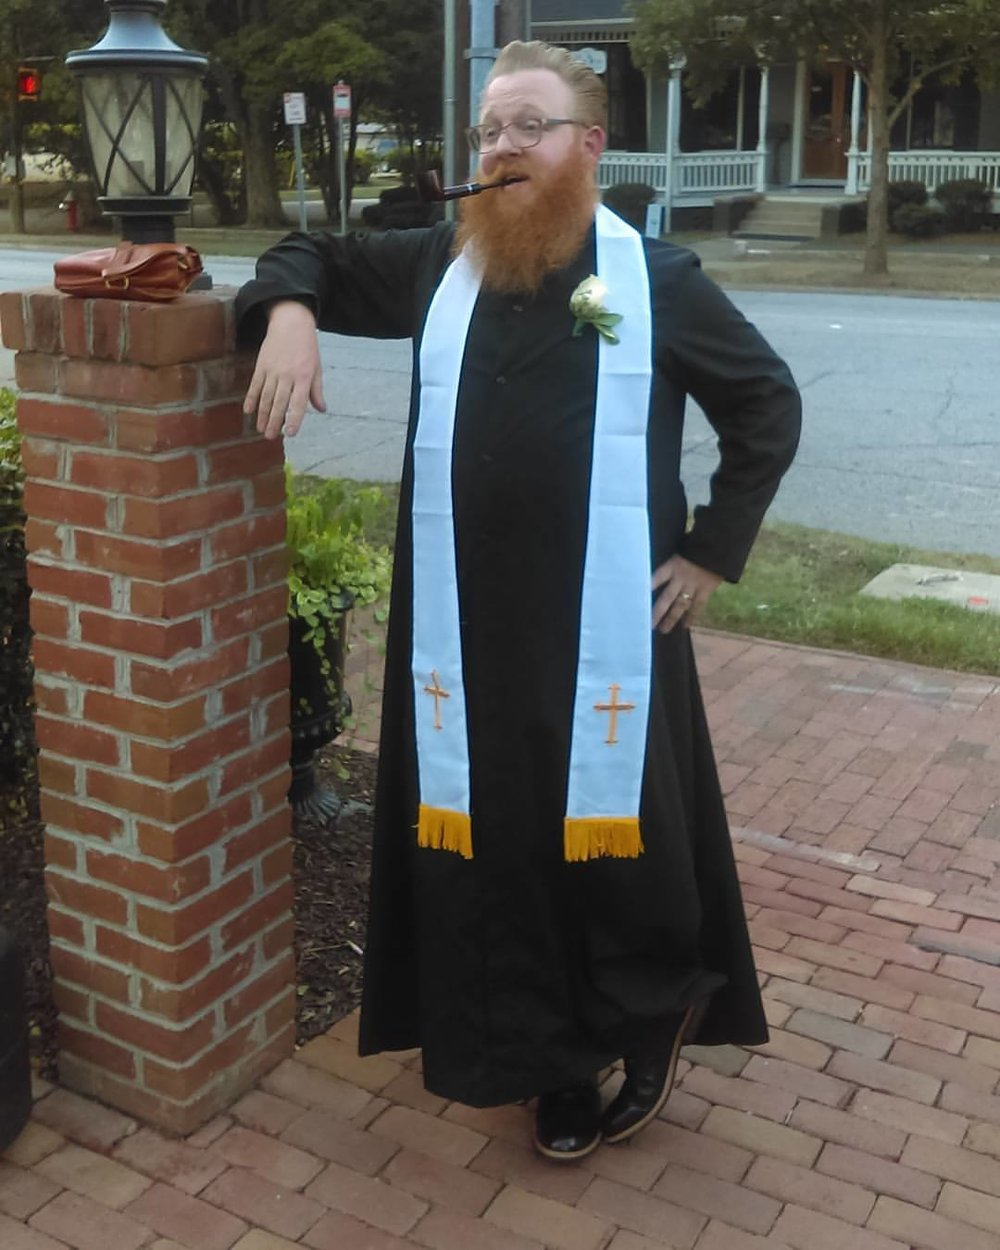 Pipe, cassock, and beard = Legitimate